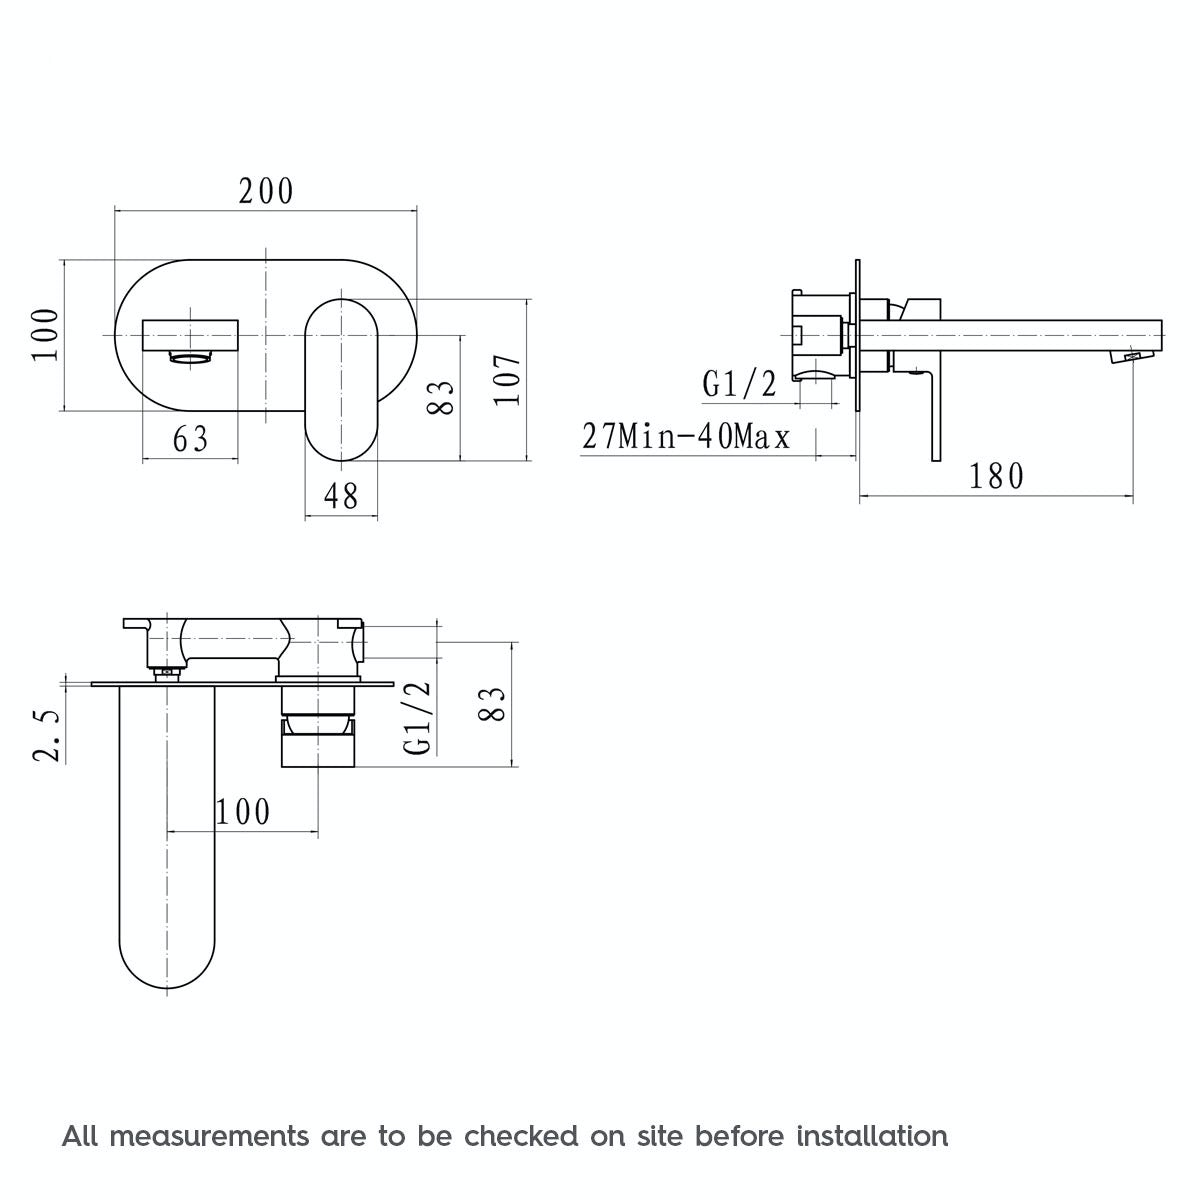 Dimensions for Mode Hardy wall mounted bath mixer tap